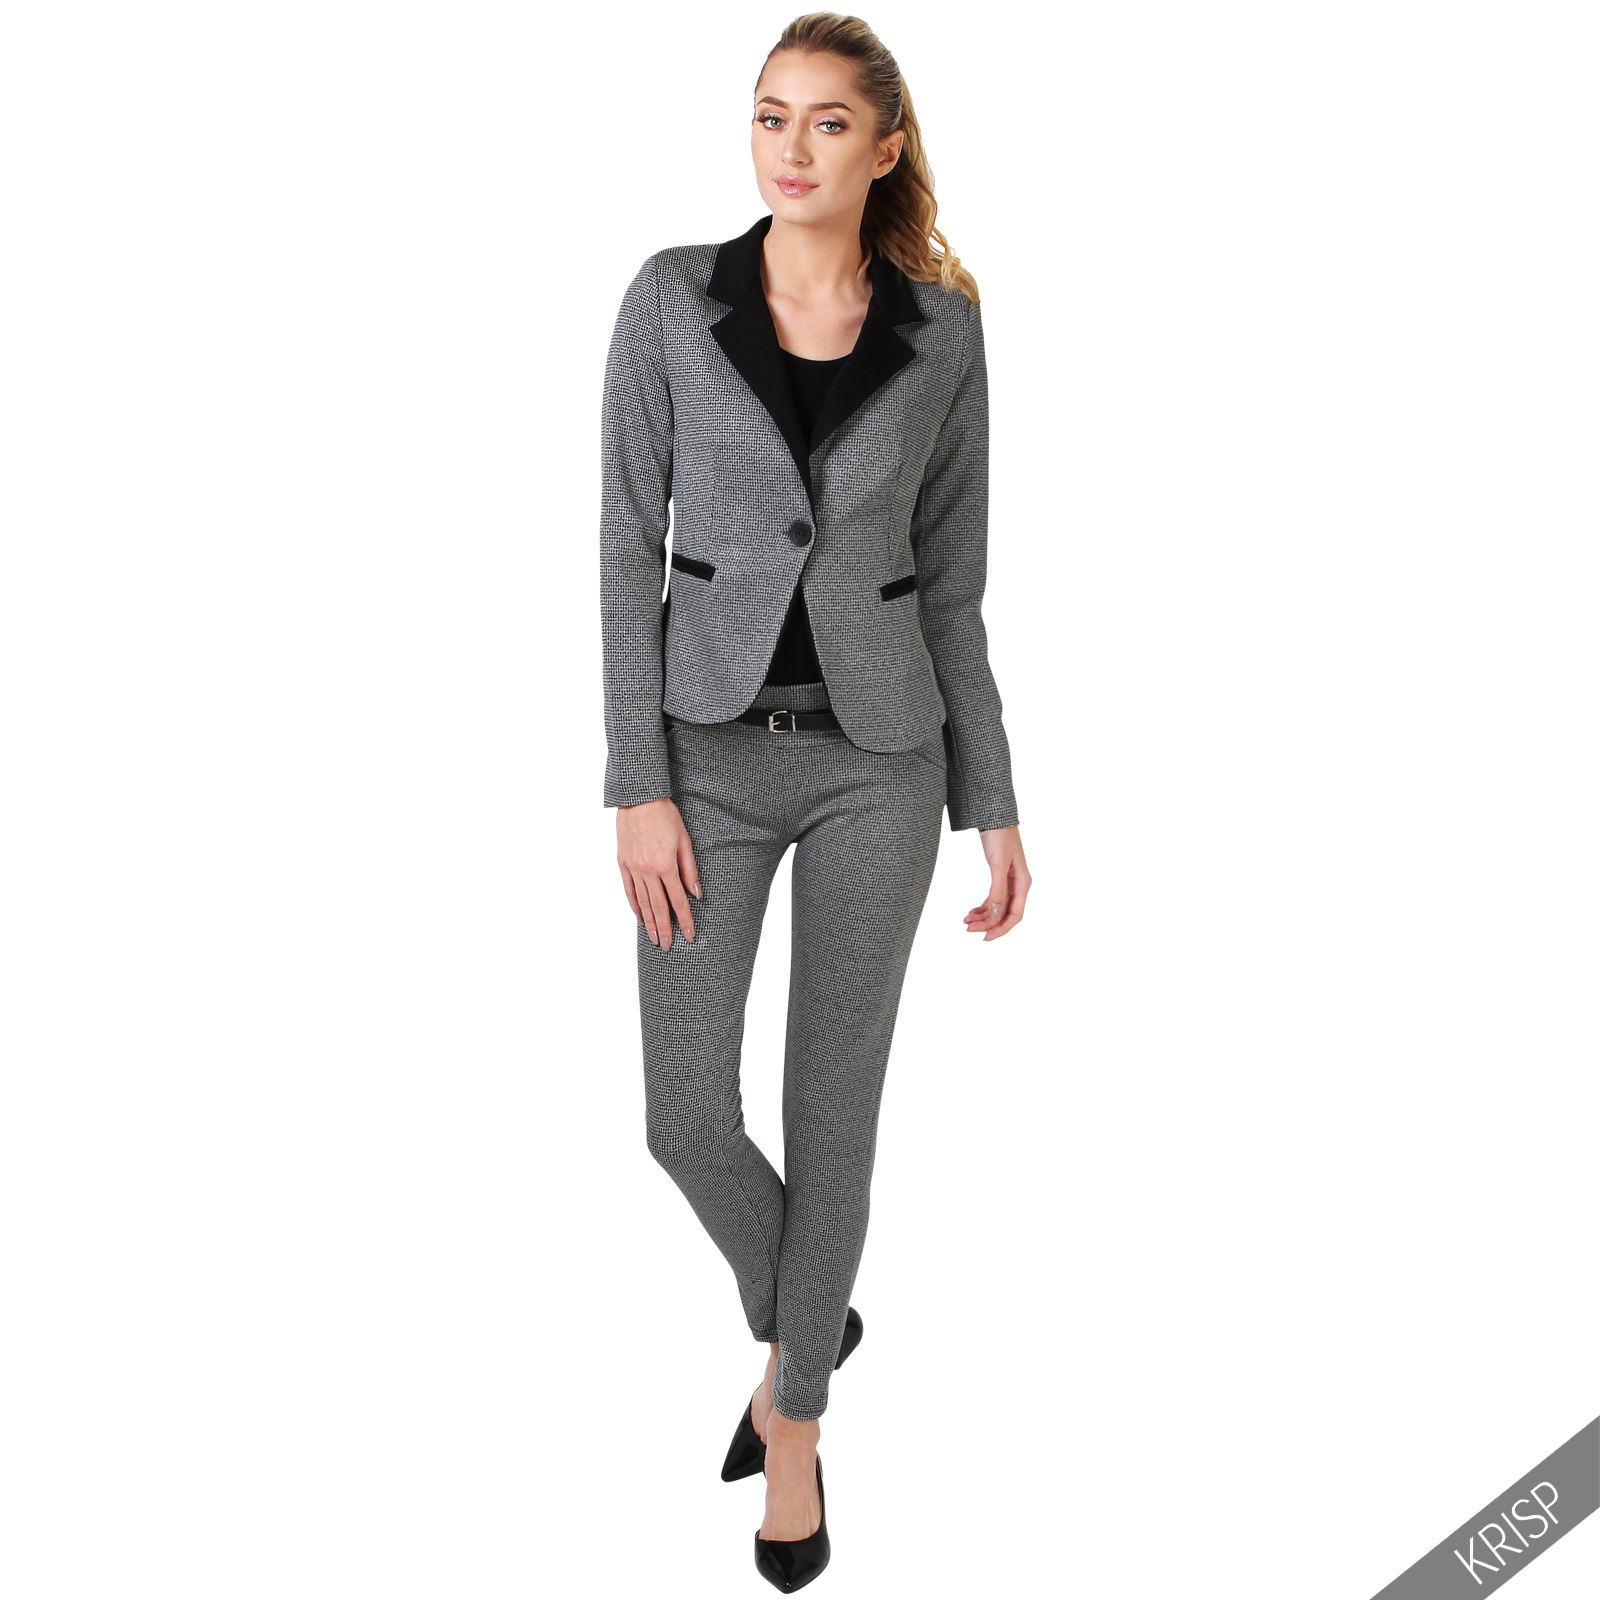 ladies womens fashion trousers blazer jacket suit 2 piece